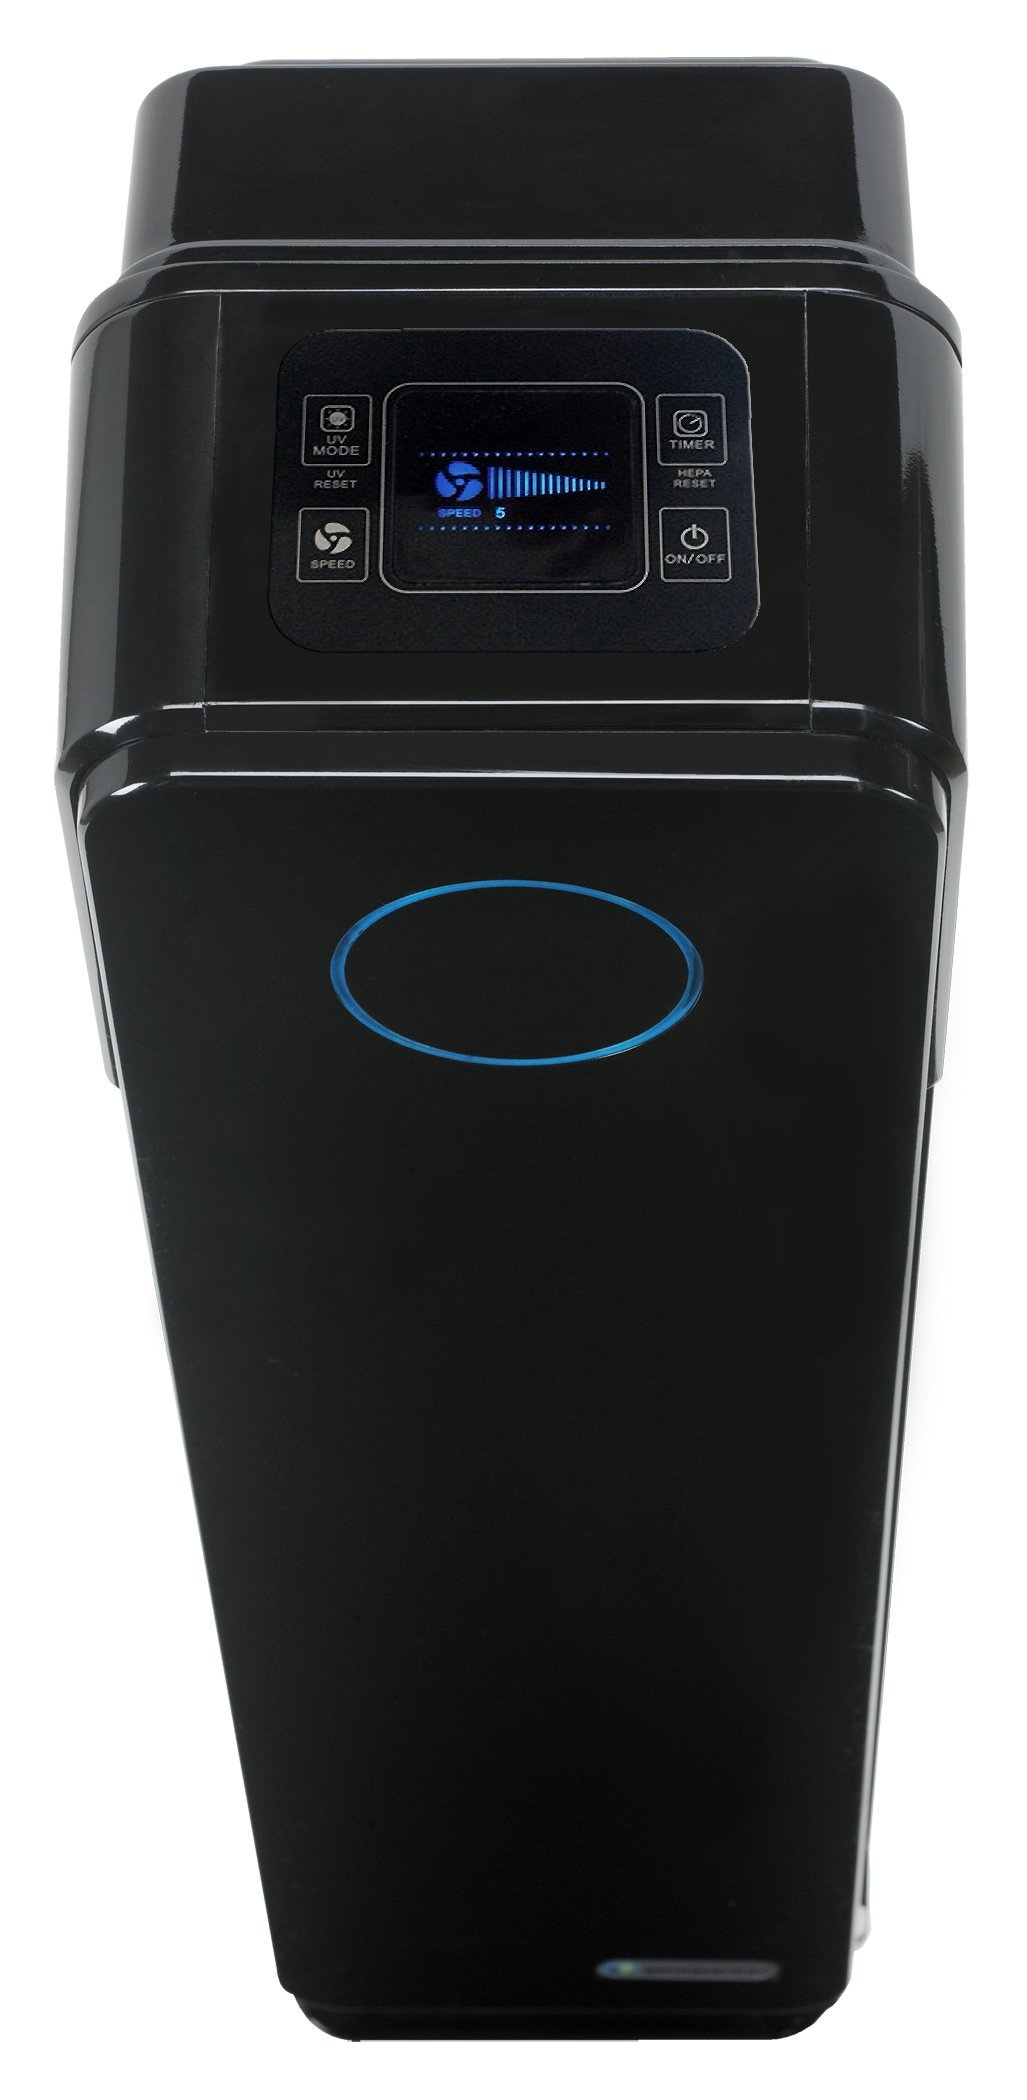 GermGuardian AC5350B Elite 4-in-1 Air Purifier with True HEPA Filter, UV-C Sanitizer, Captures Allergens, Smoke, Odors, Mold, Dust, Germs, Pets, Smokers, 28-Inch Germ Guardian Air Purifier by Guardian Technologies (Image #13)